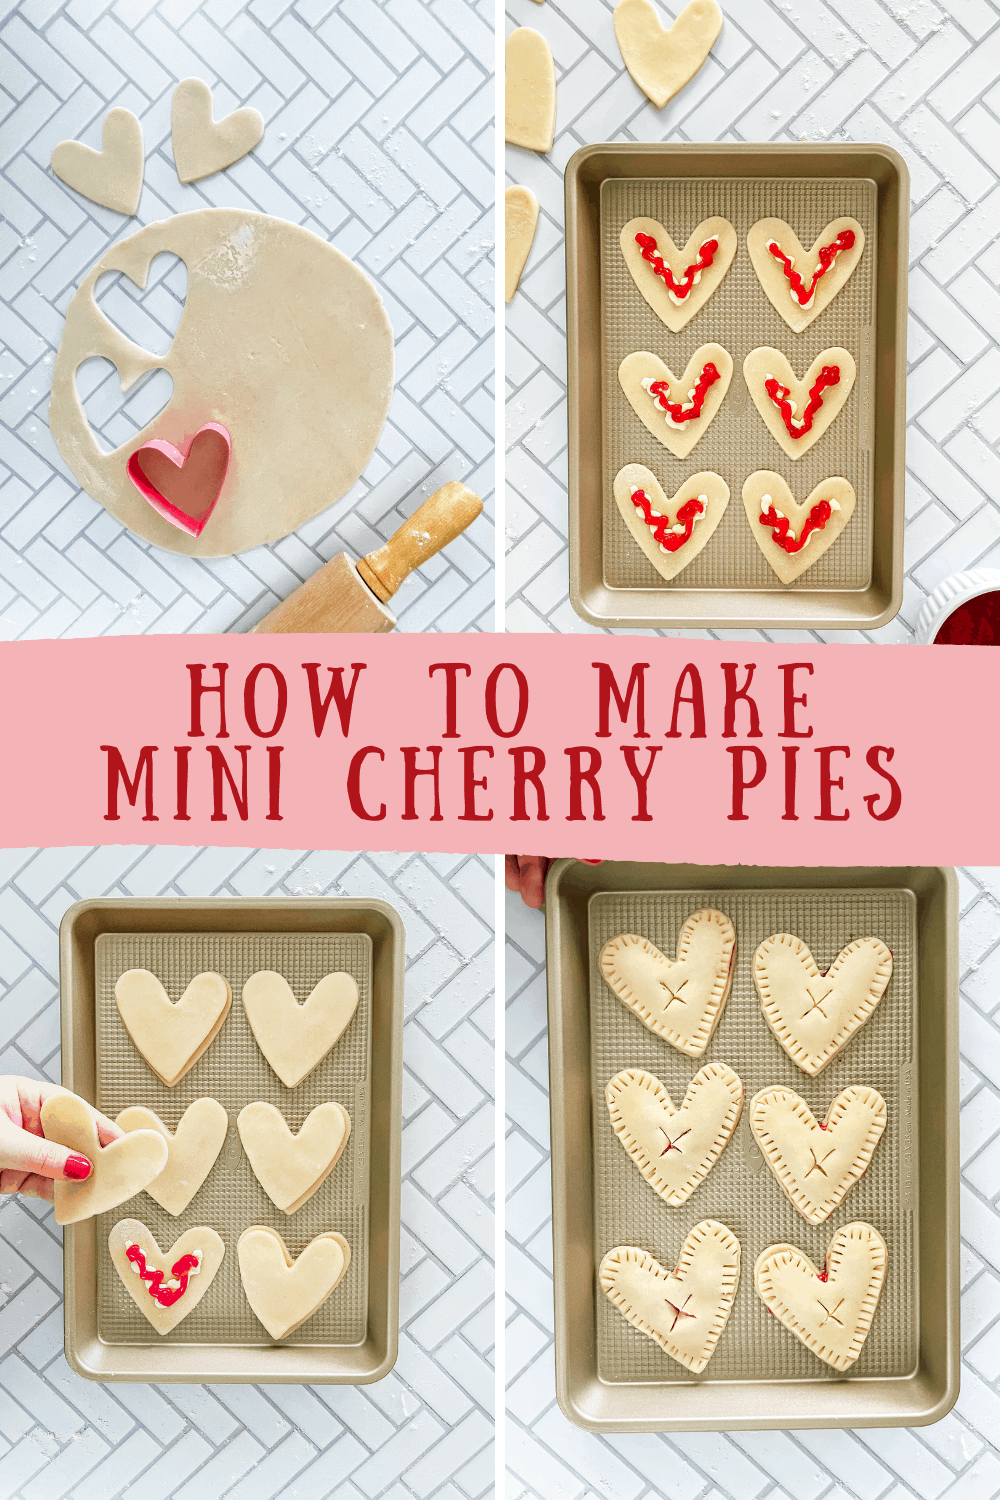 How to Make Mini Cherry Pies